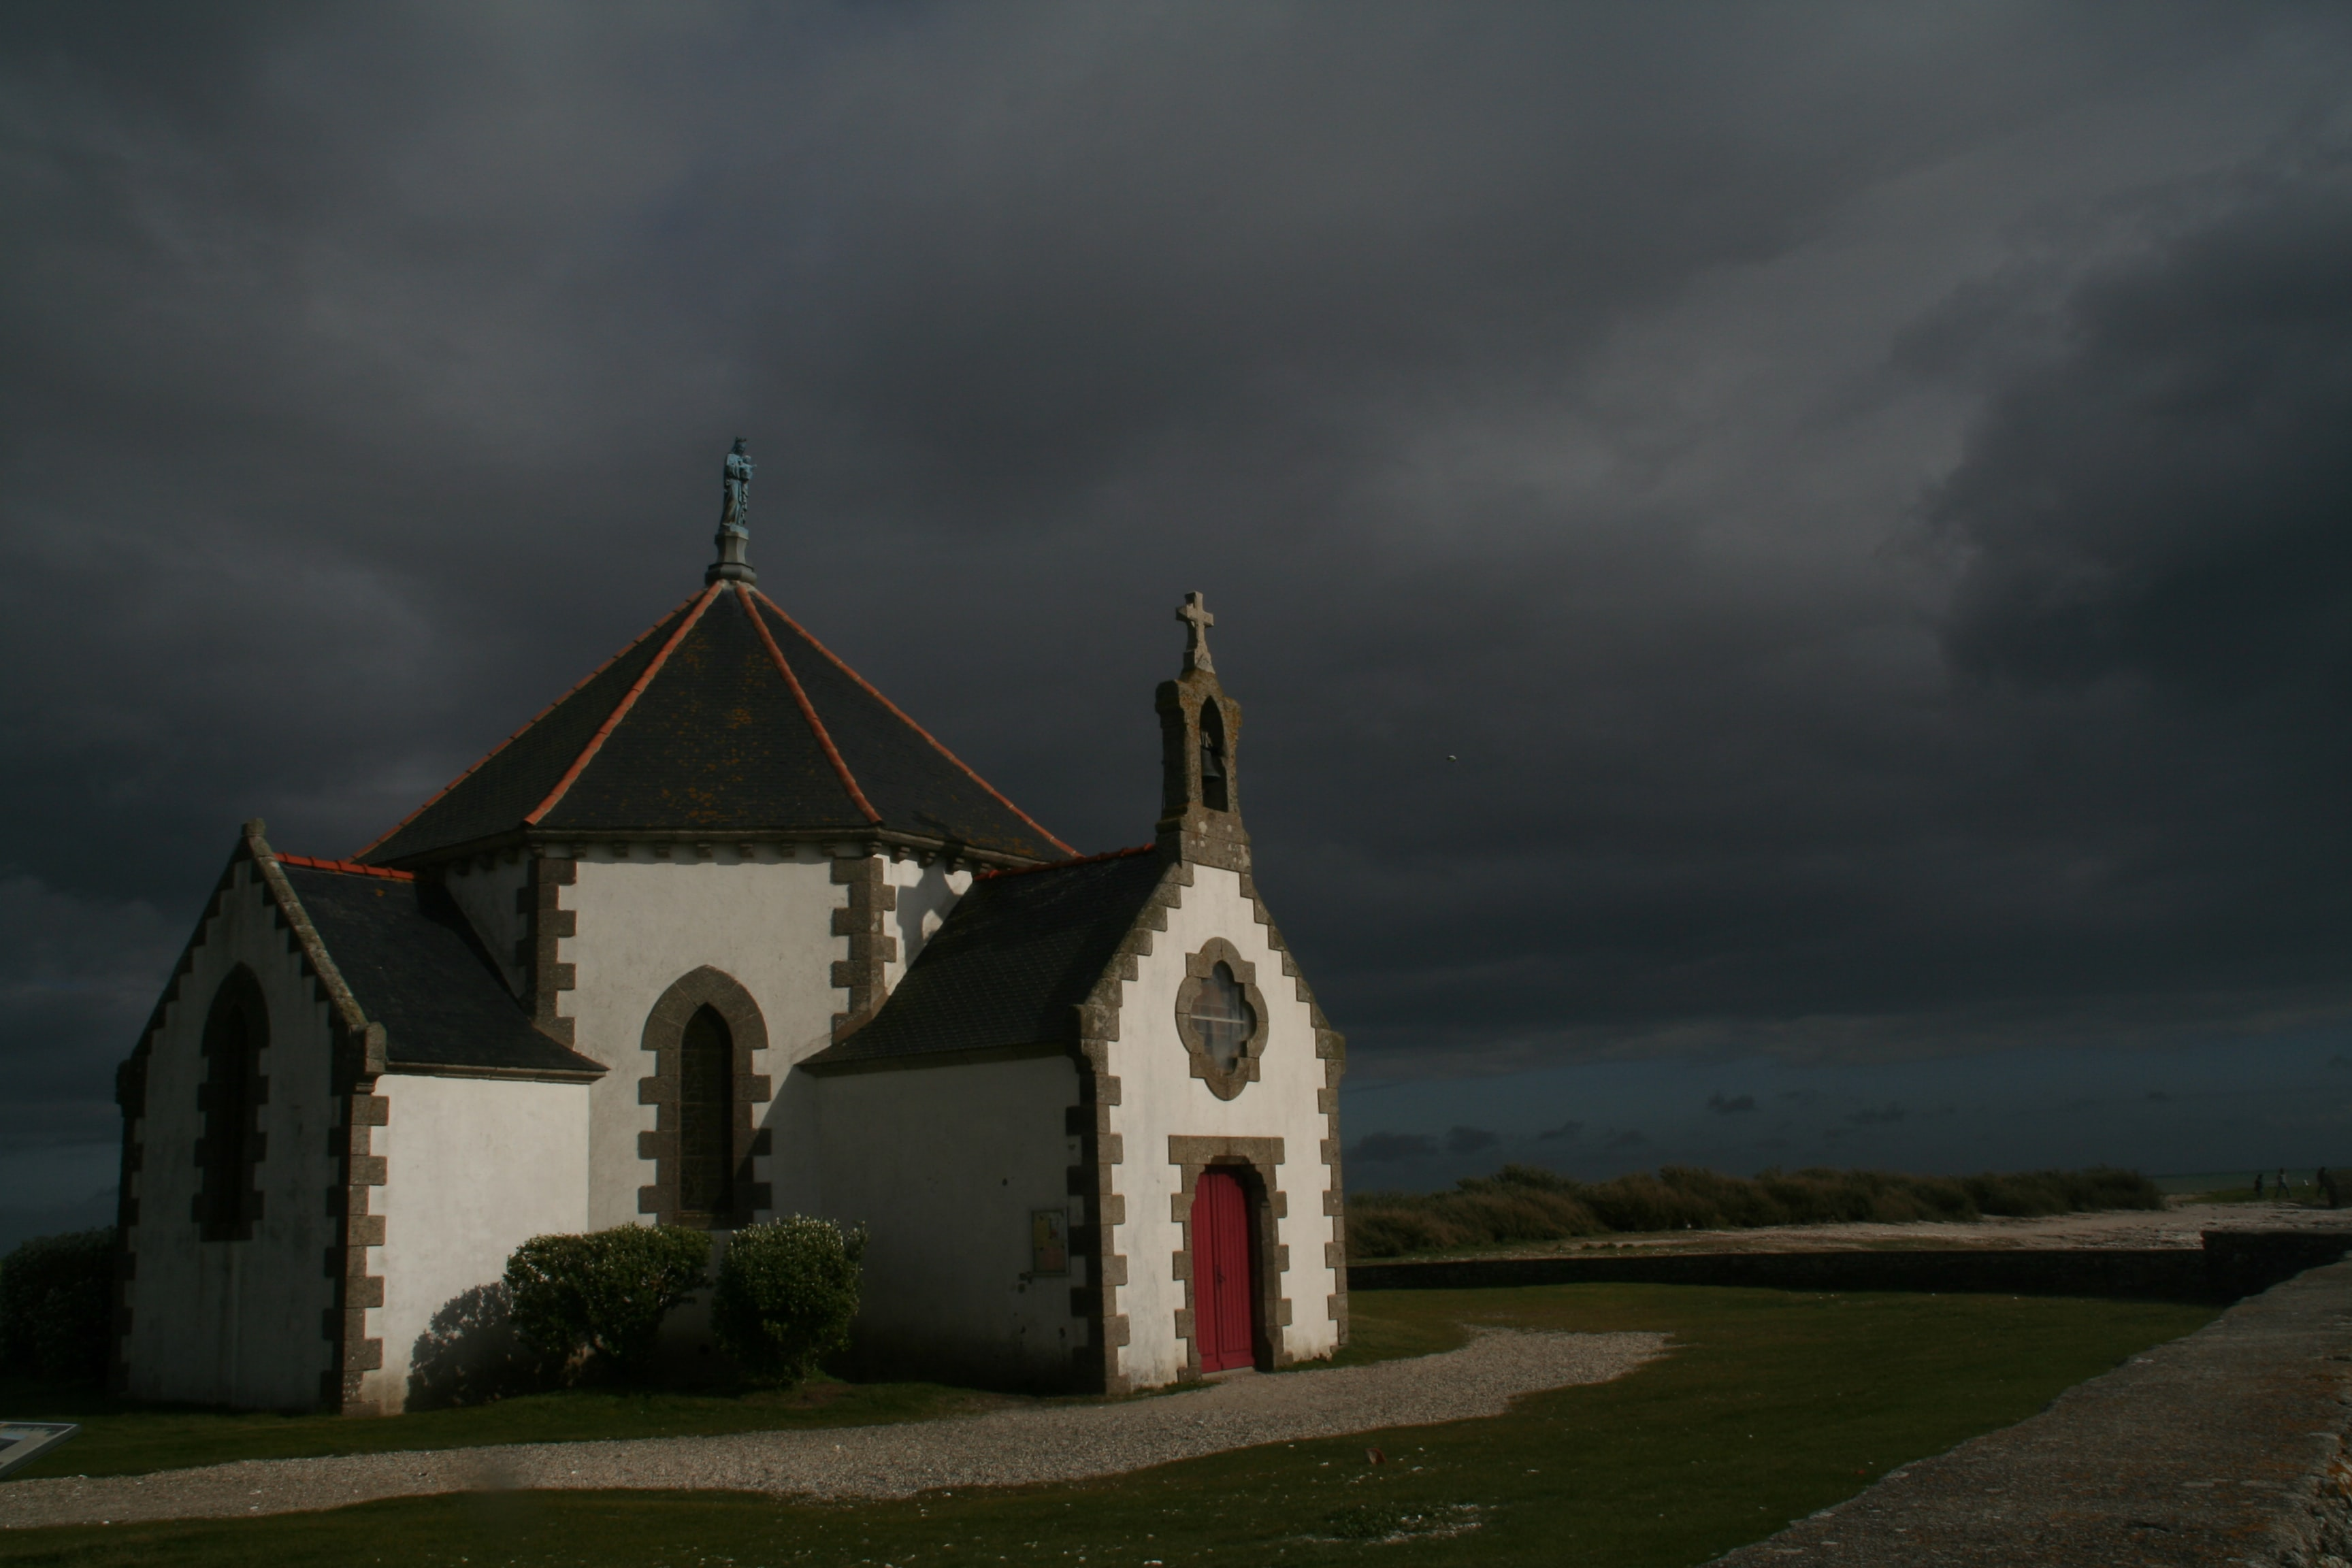 Storm clouds rolls in the sky over an isolated church